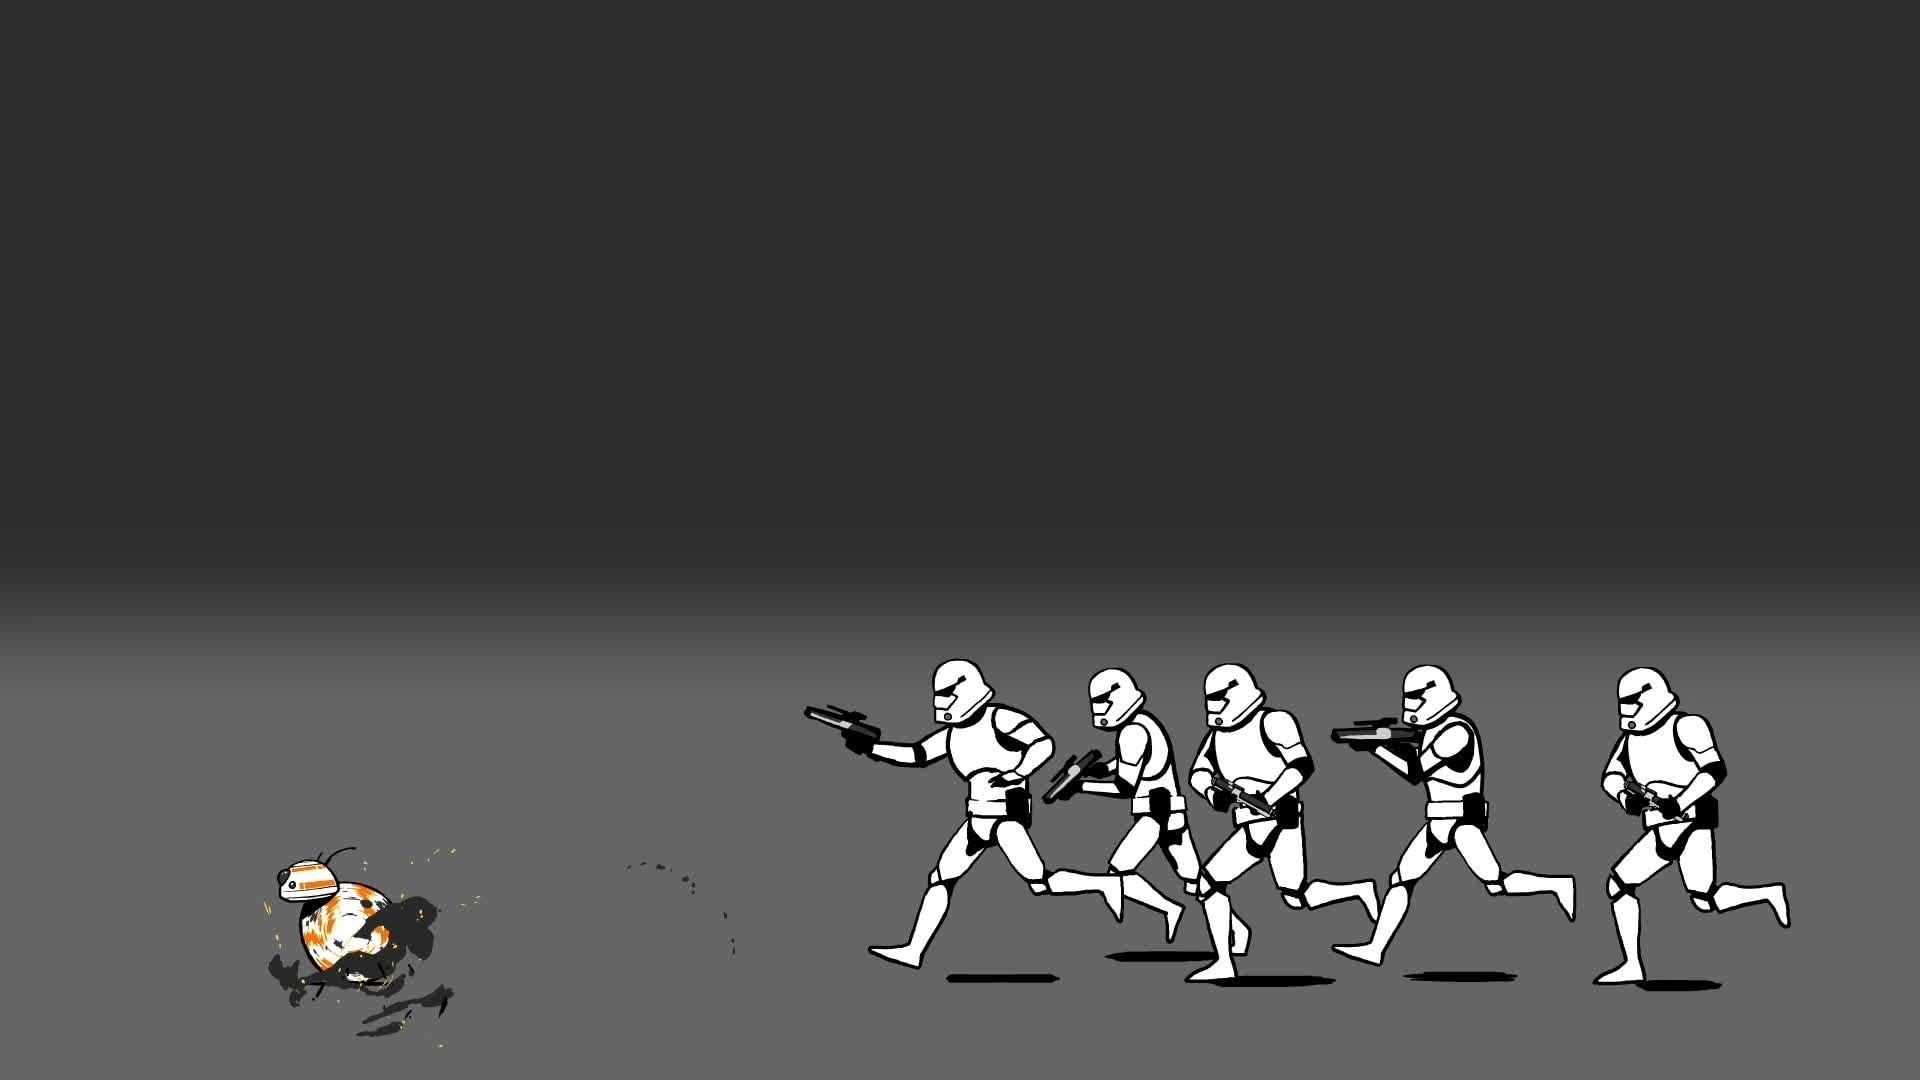 Star Wars Blips - The Chase